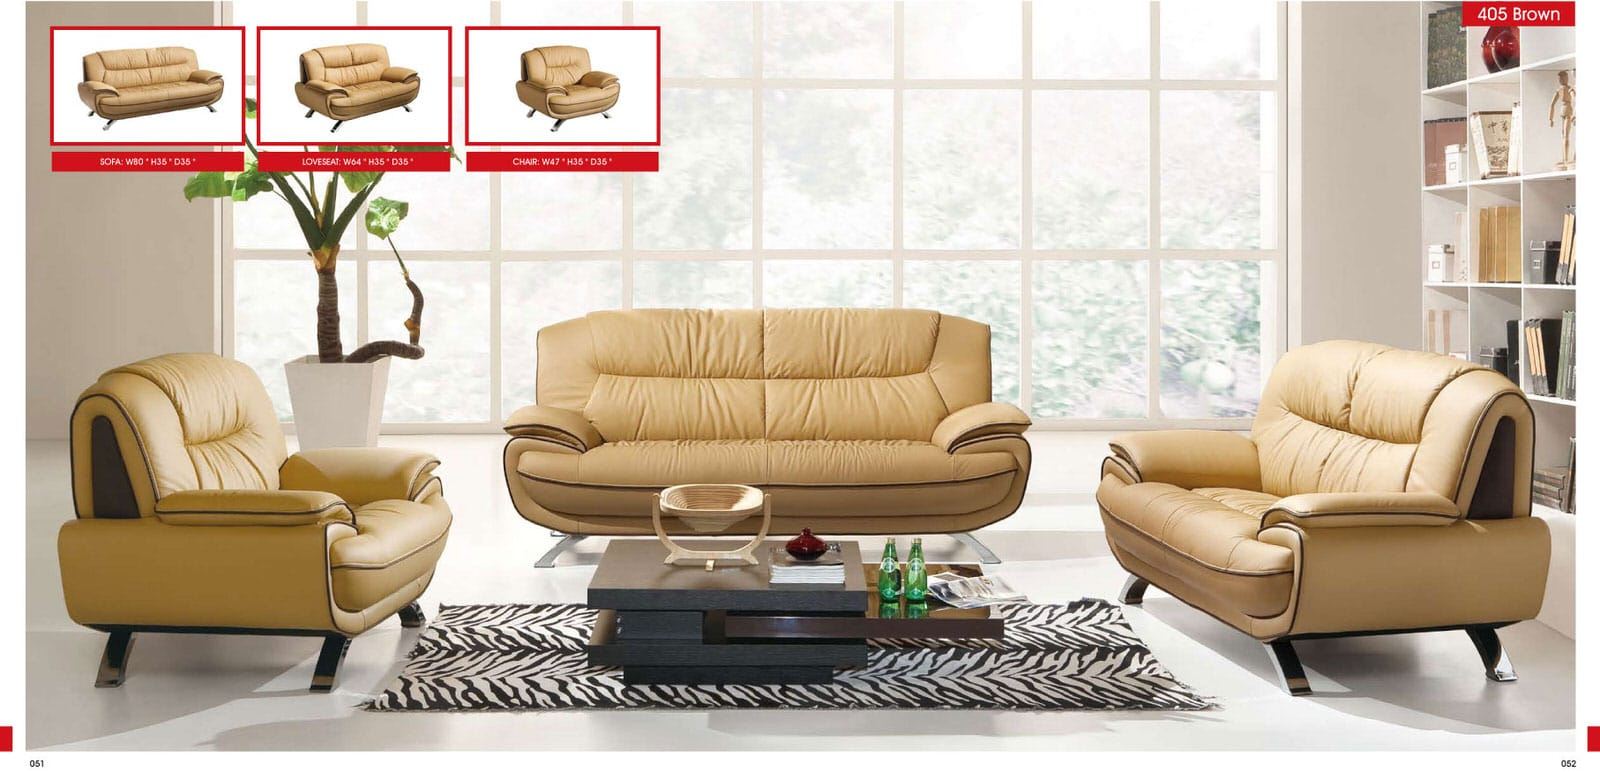 405 brown leather sofa set by esf for Living room furniture pictures